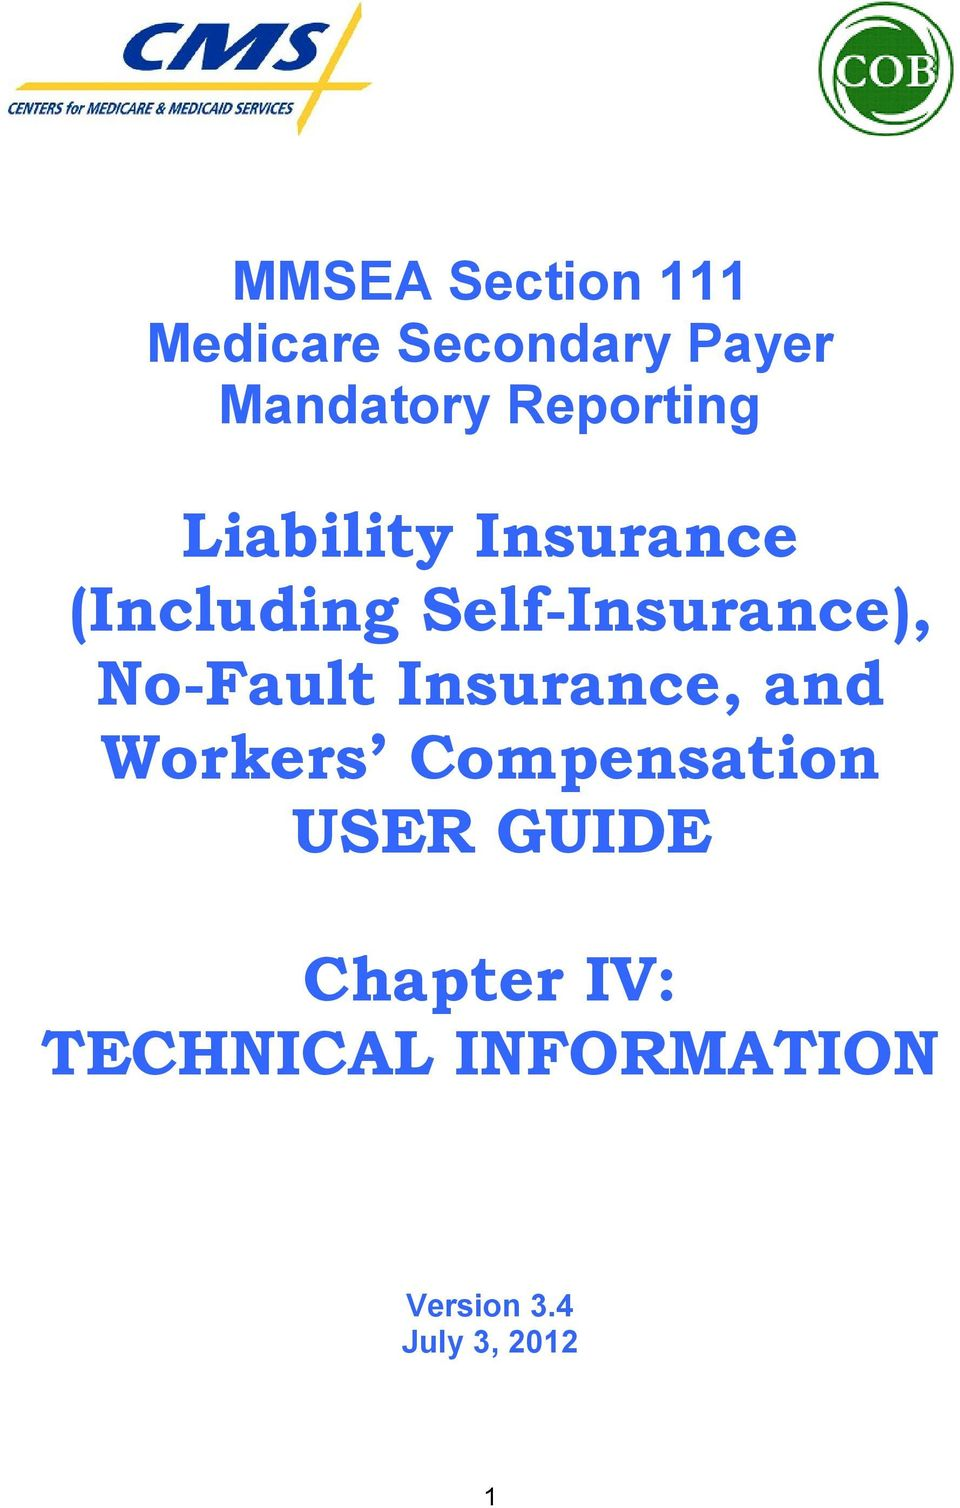 Self-Insurance), No-Fault Insurance, and Workers